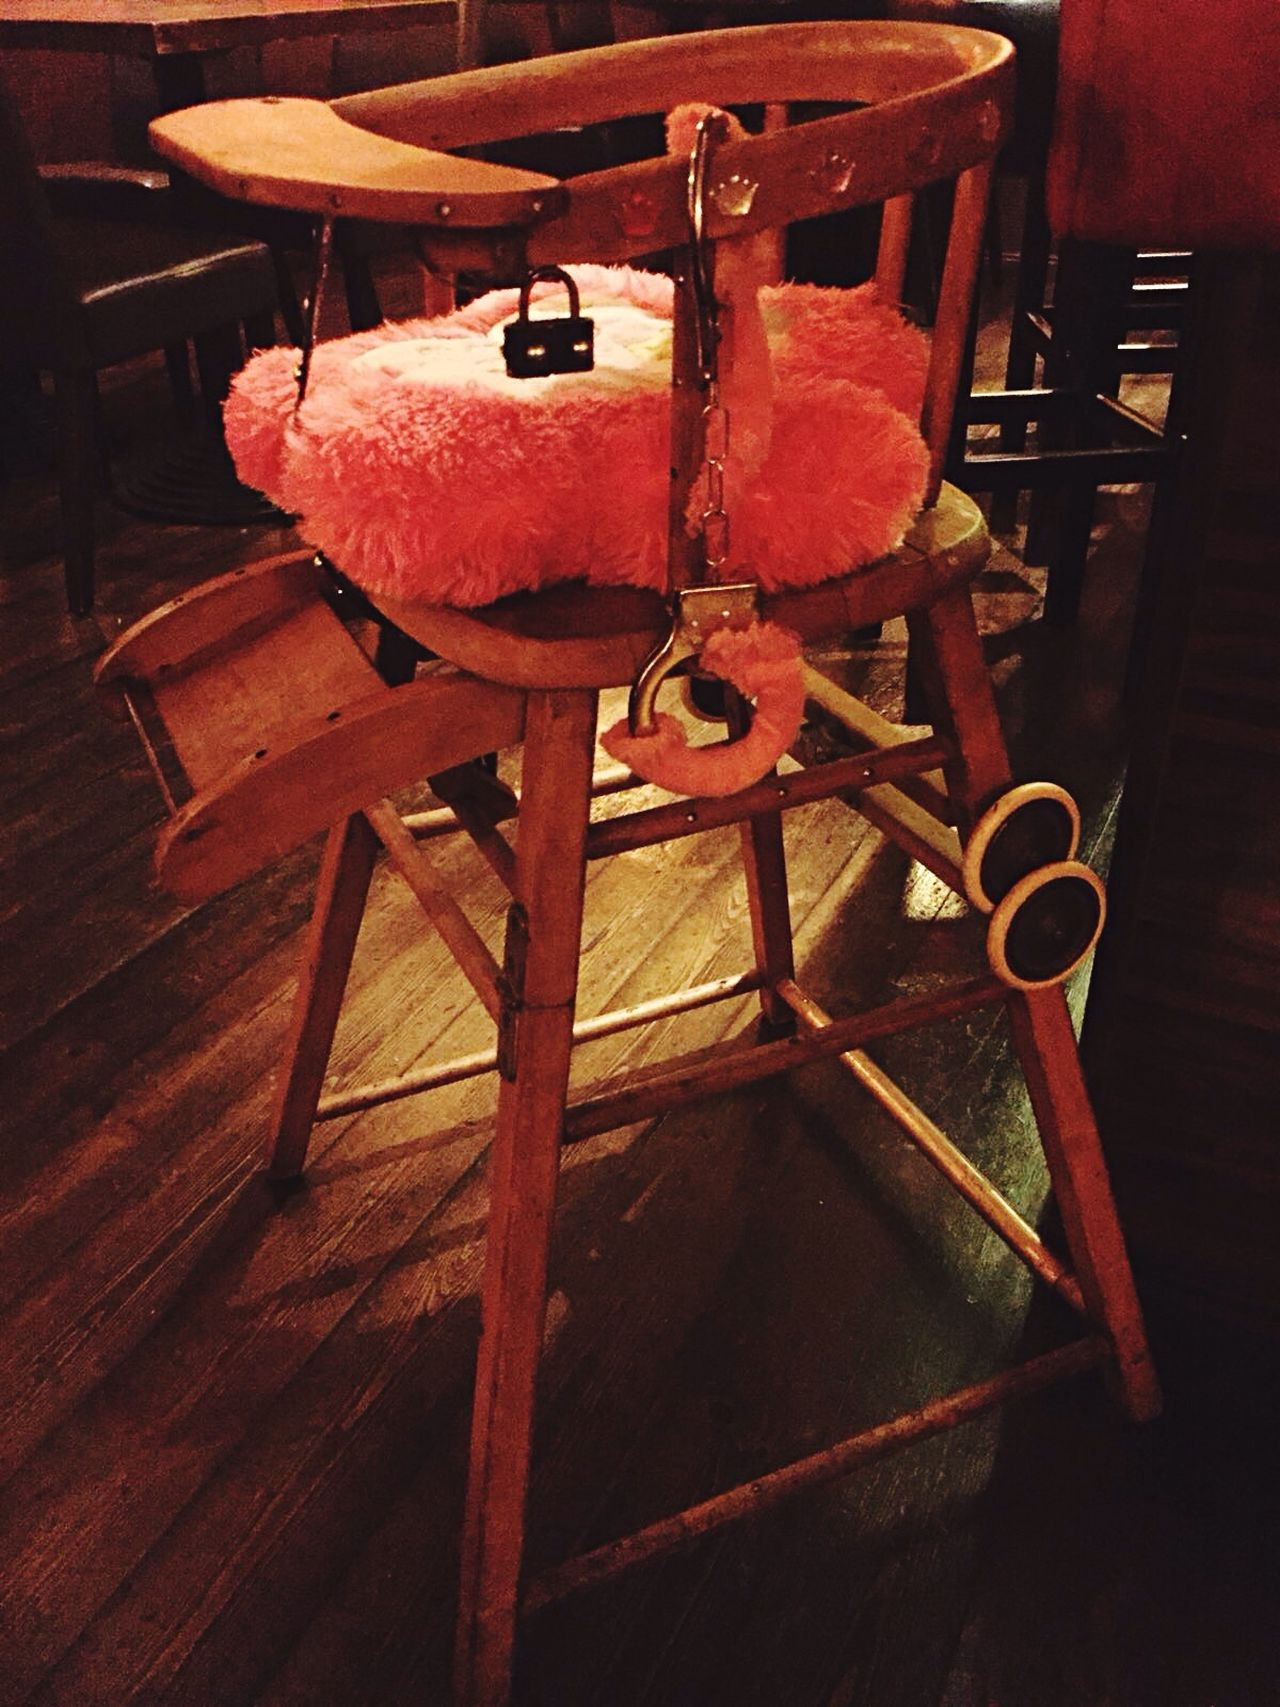 Berlin style. Chair Empty Seat Hardwood Floor Restaurant Relaxation Dining No Cooking Tonight Child's Chair Berlin Style Going Nowhere Pink Power